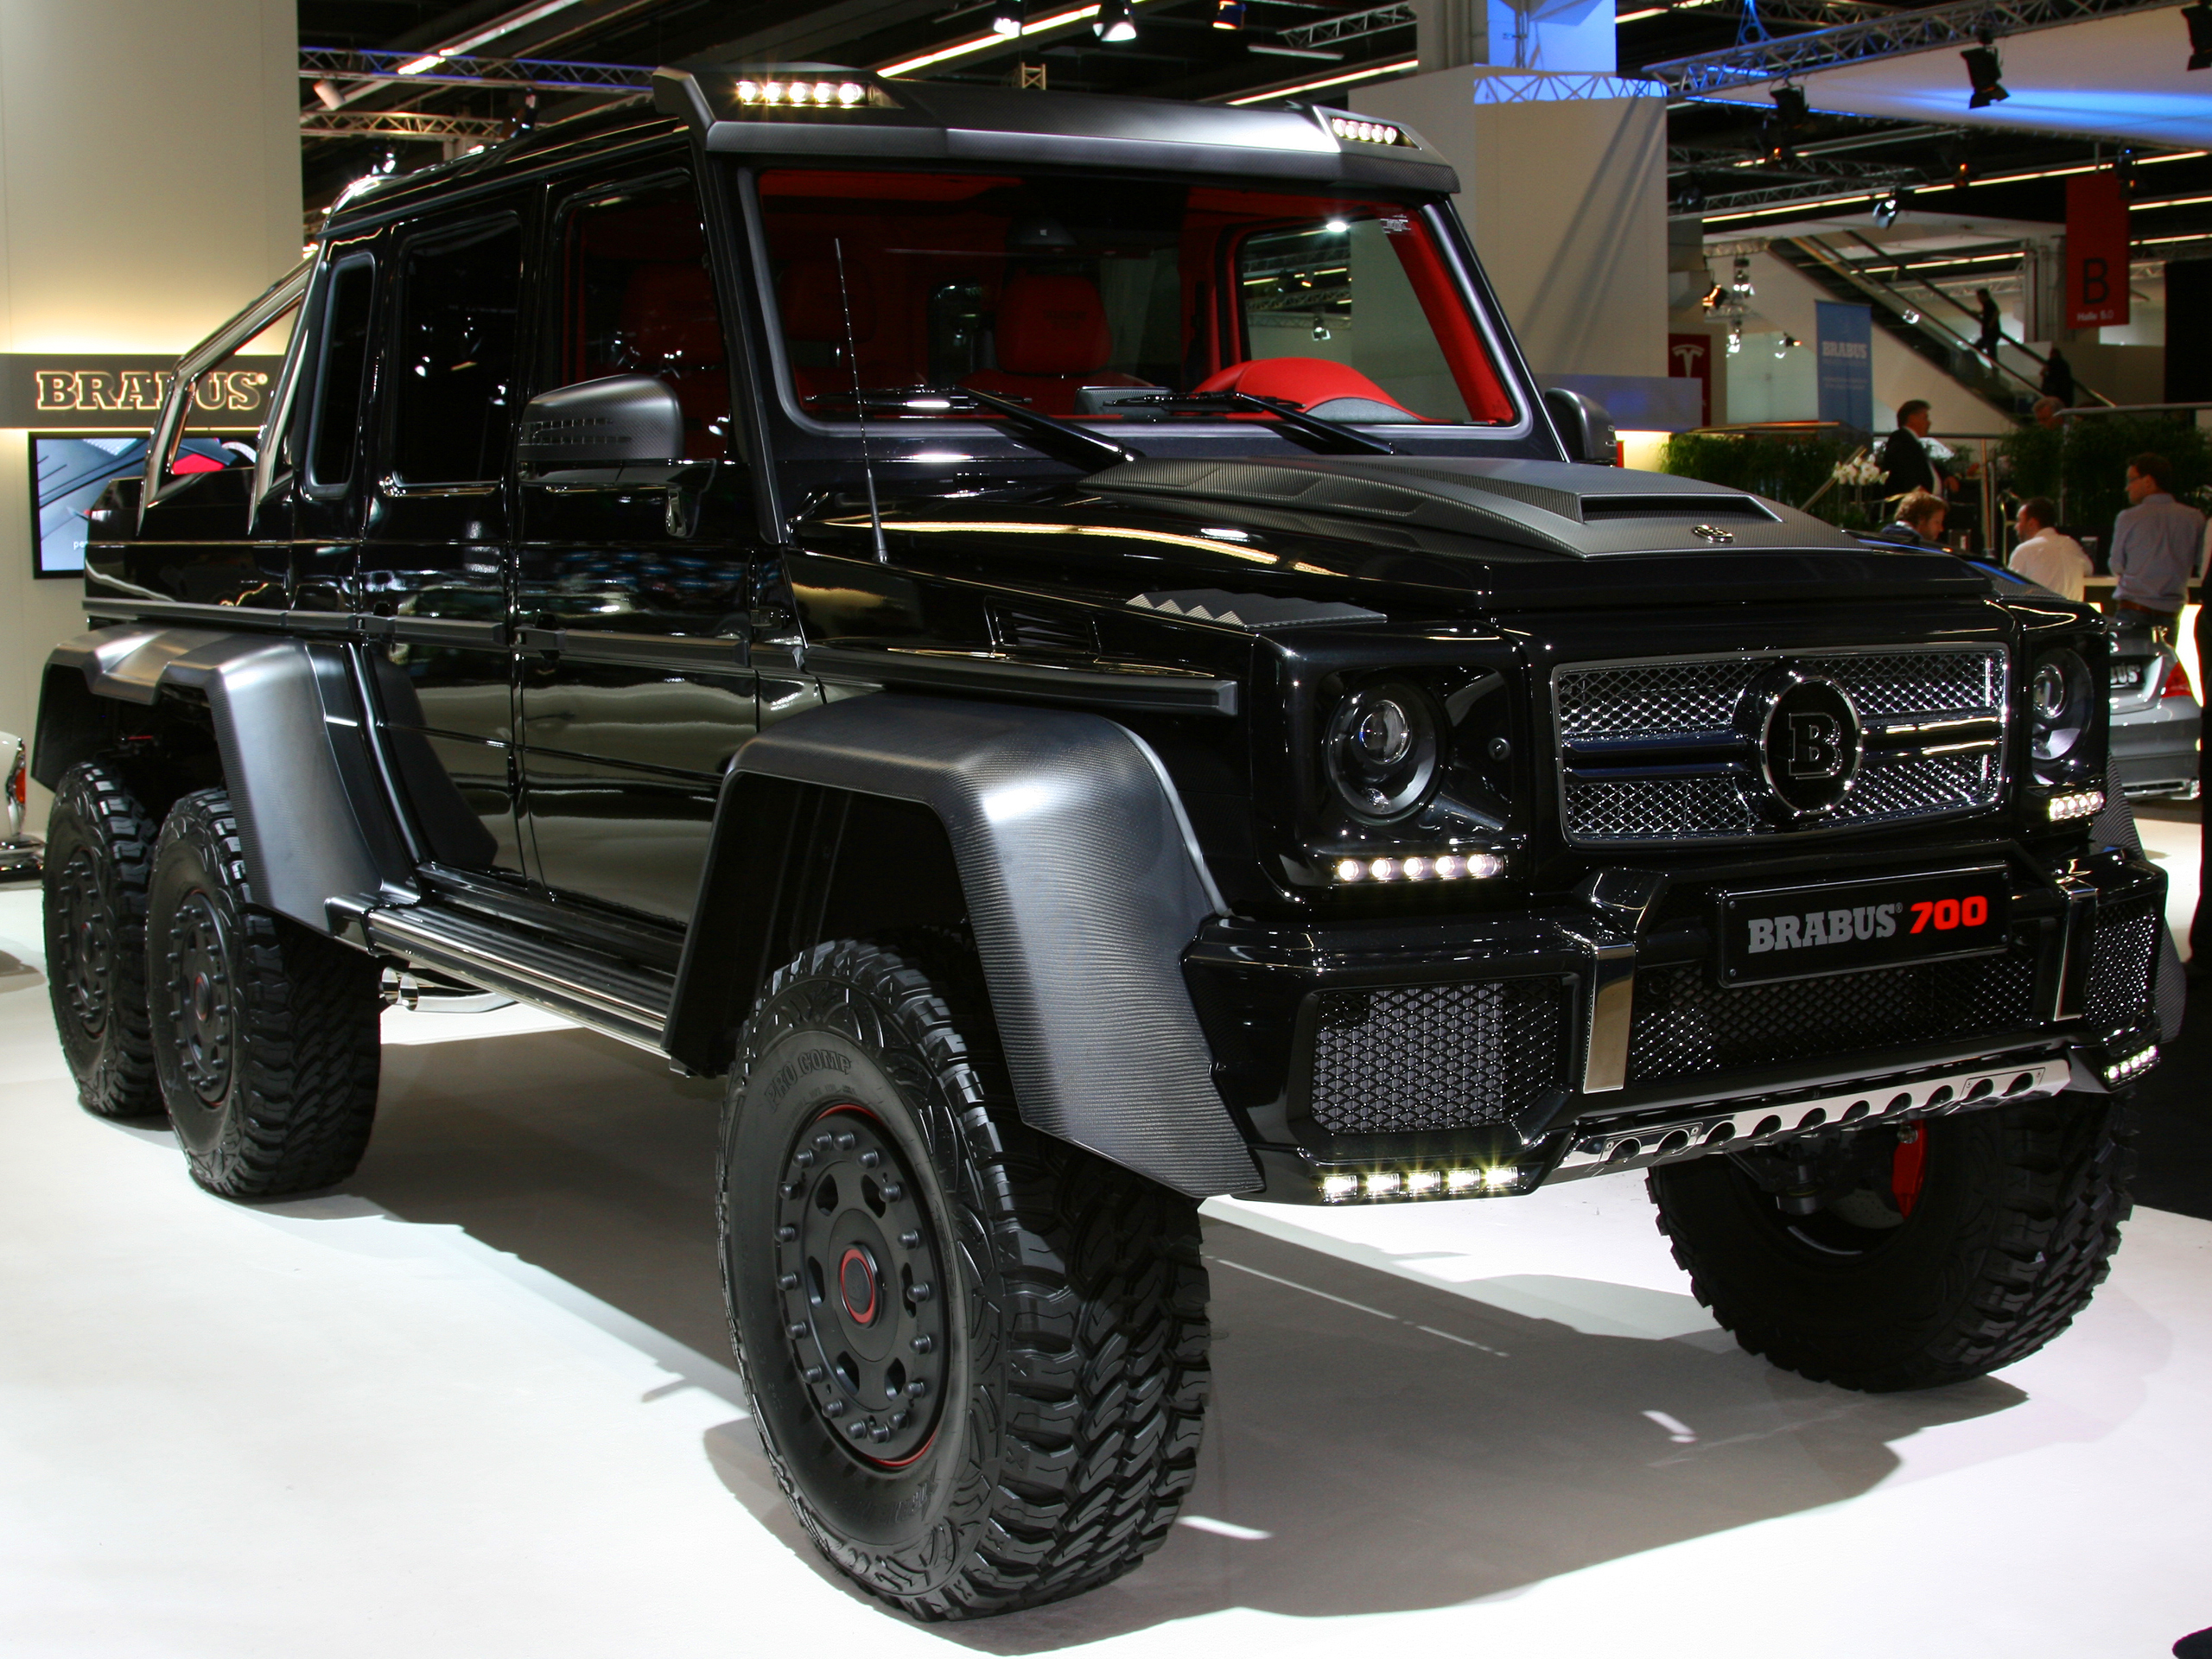 brabus b63s 700 6x6 auf der iaa 2013 g klasse tuning. Black Bedroom Furniture Sets. Home Design Ideas